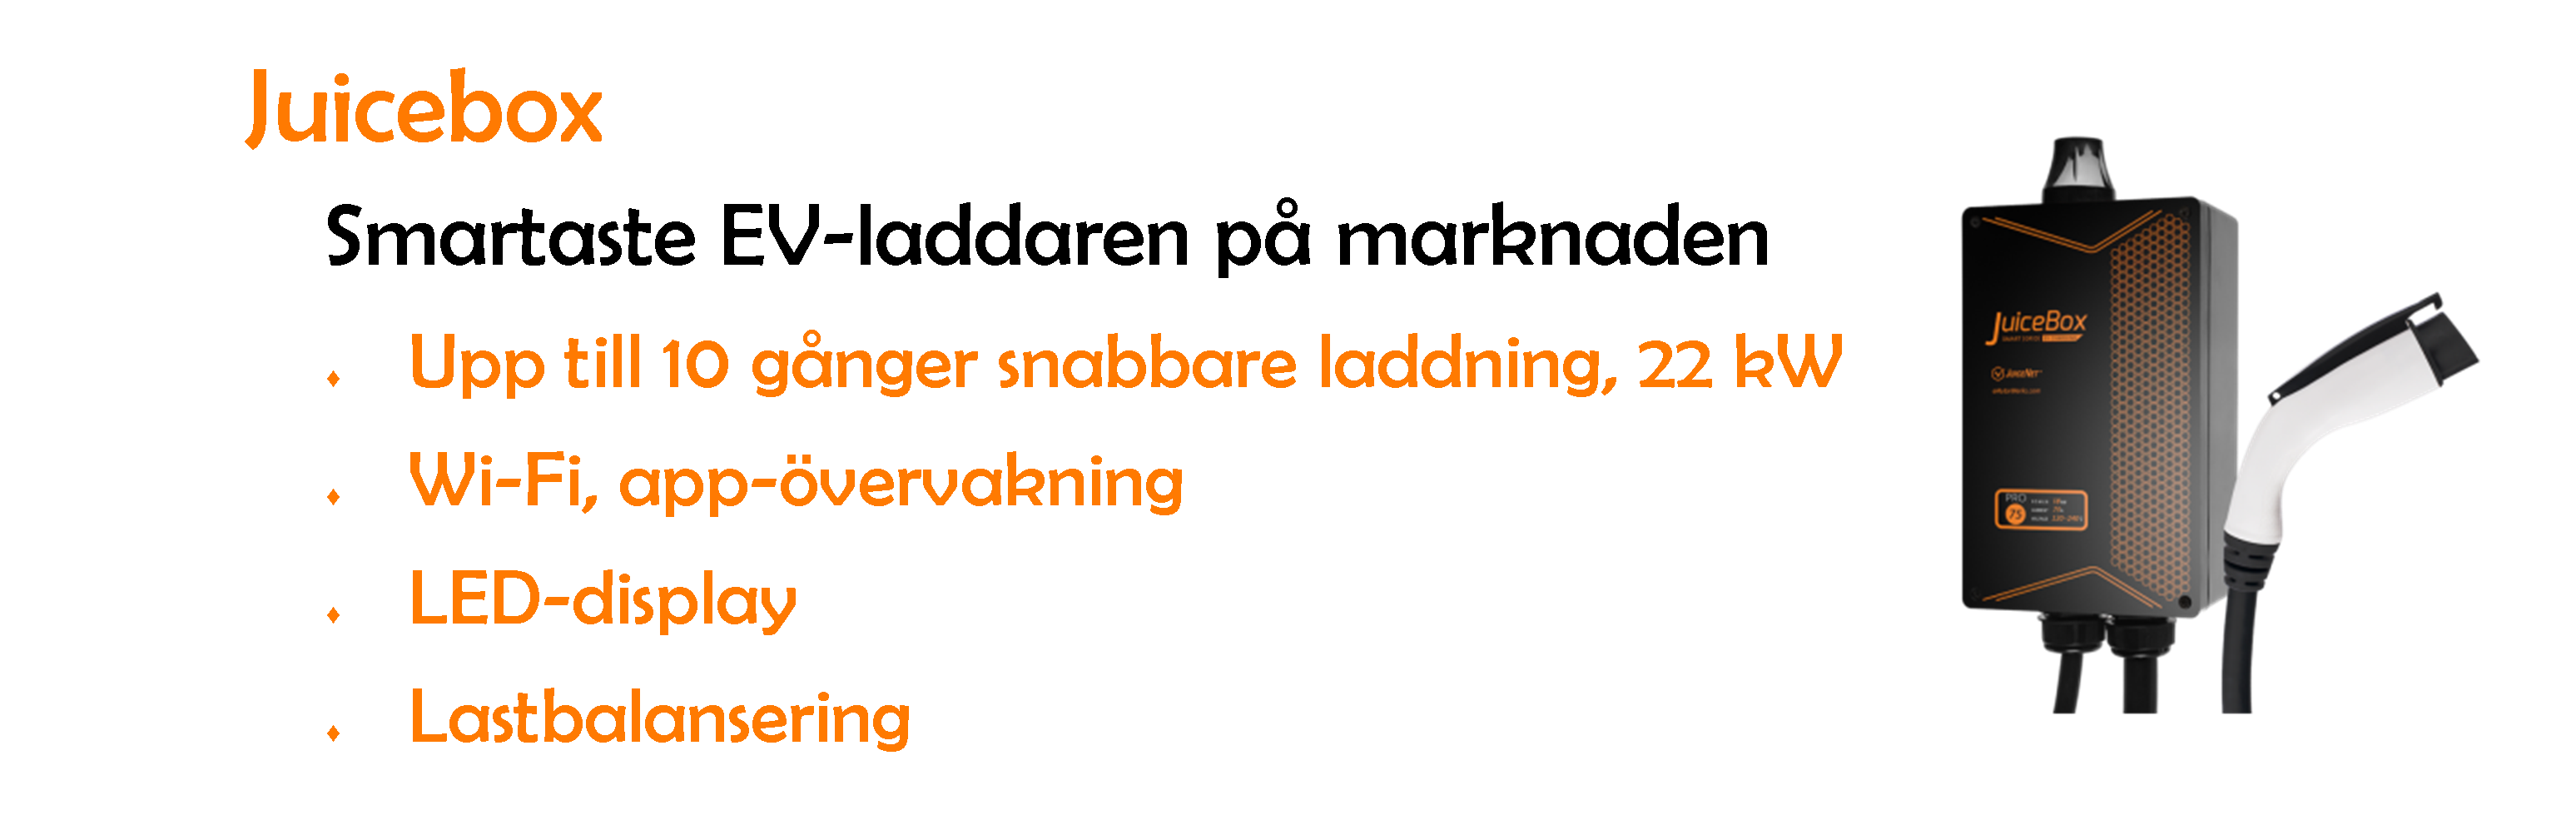 Laddbox_bärbar_Juicebox_EV Solution_Ladda elbil_ladda elbil_elbil_laddbox_Niro_laddningsutrustning